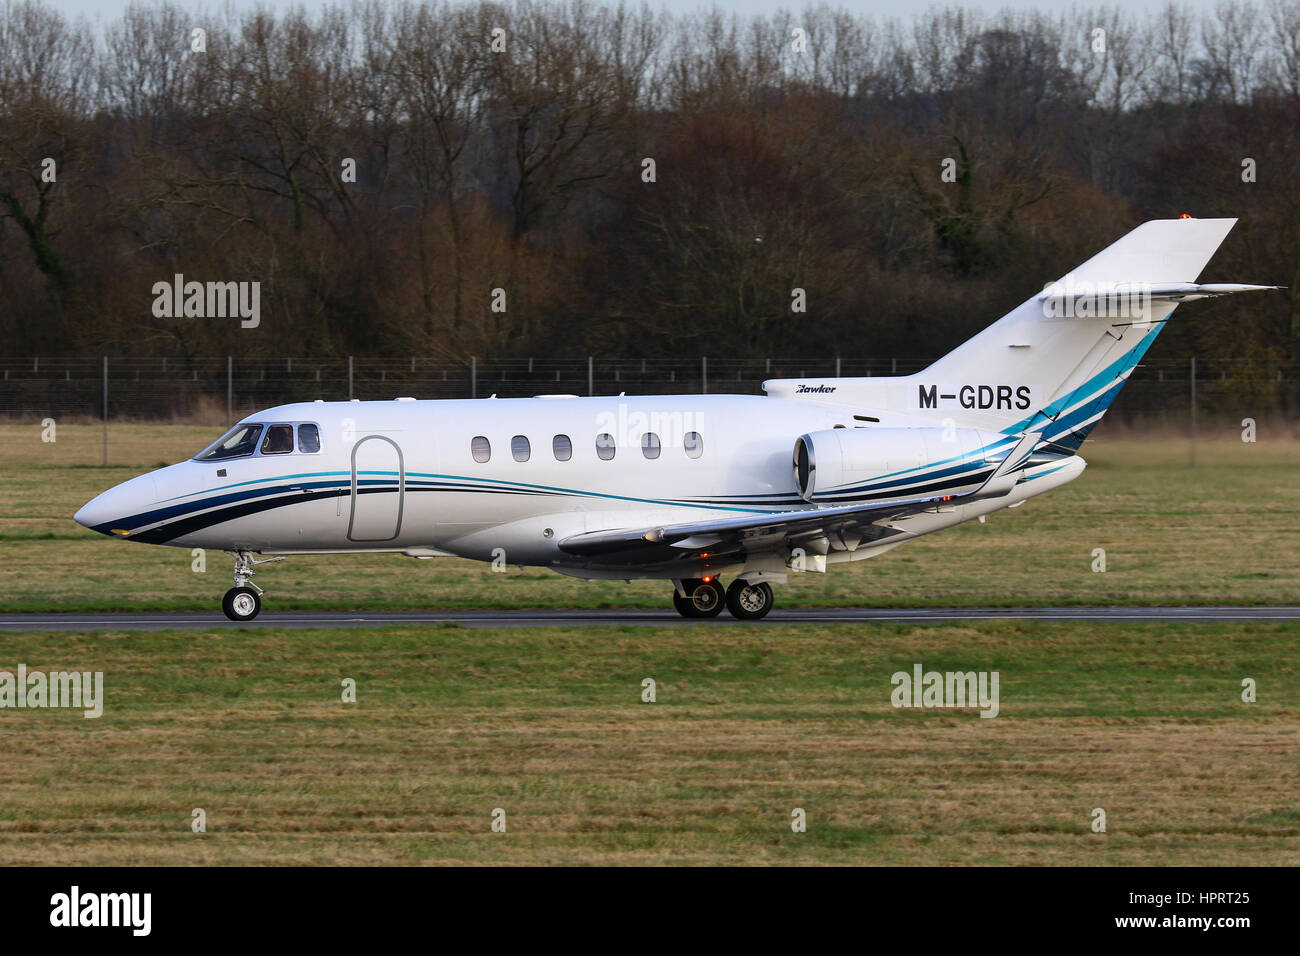 Hawker Beechcraft 800XP M-GDRS taxiing for take-off at Southampton Airport - Stock Image